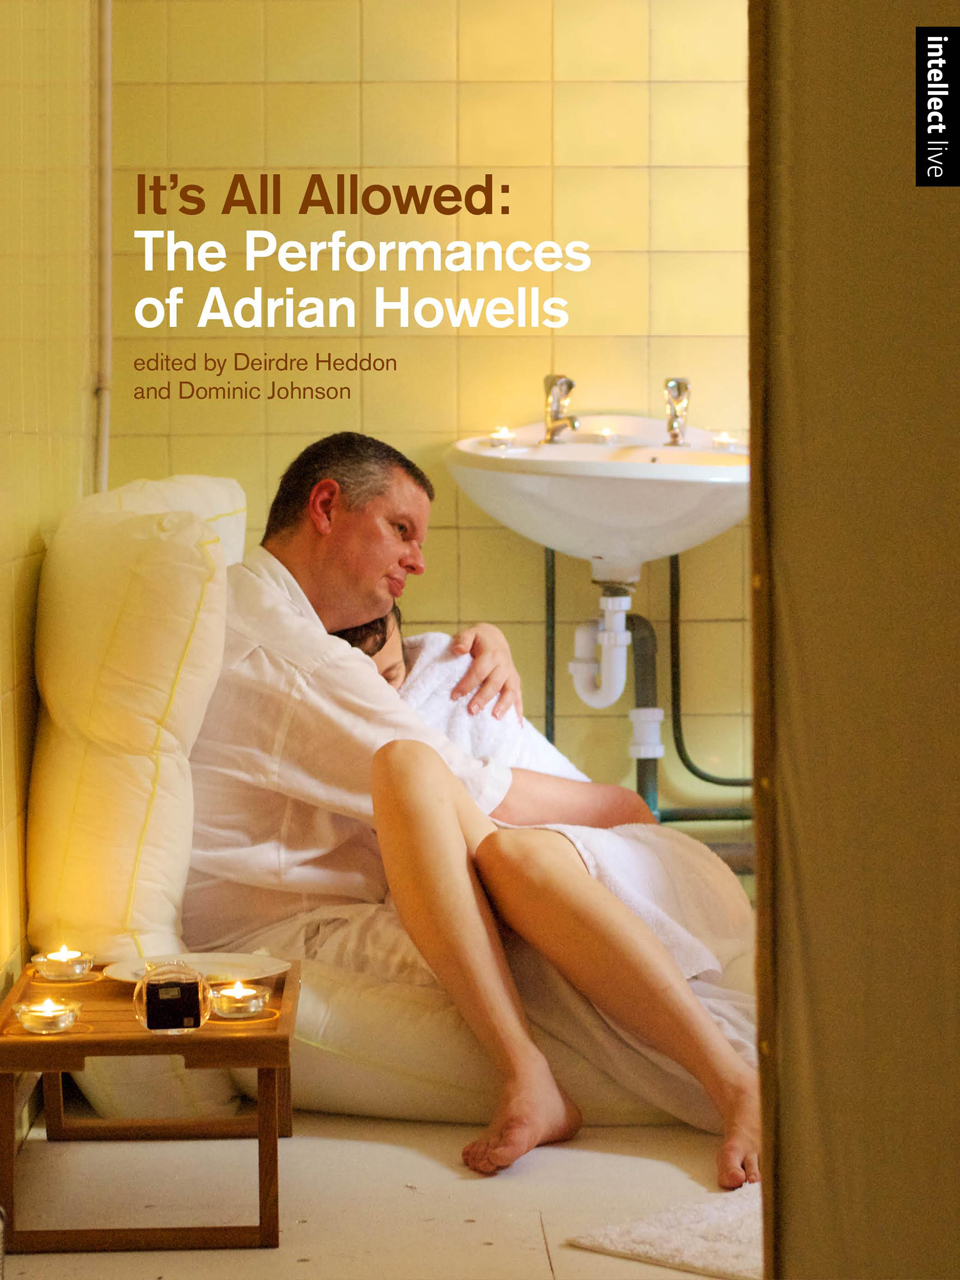 It's All Allowed: The Performances of Adrian Howells